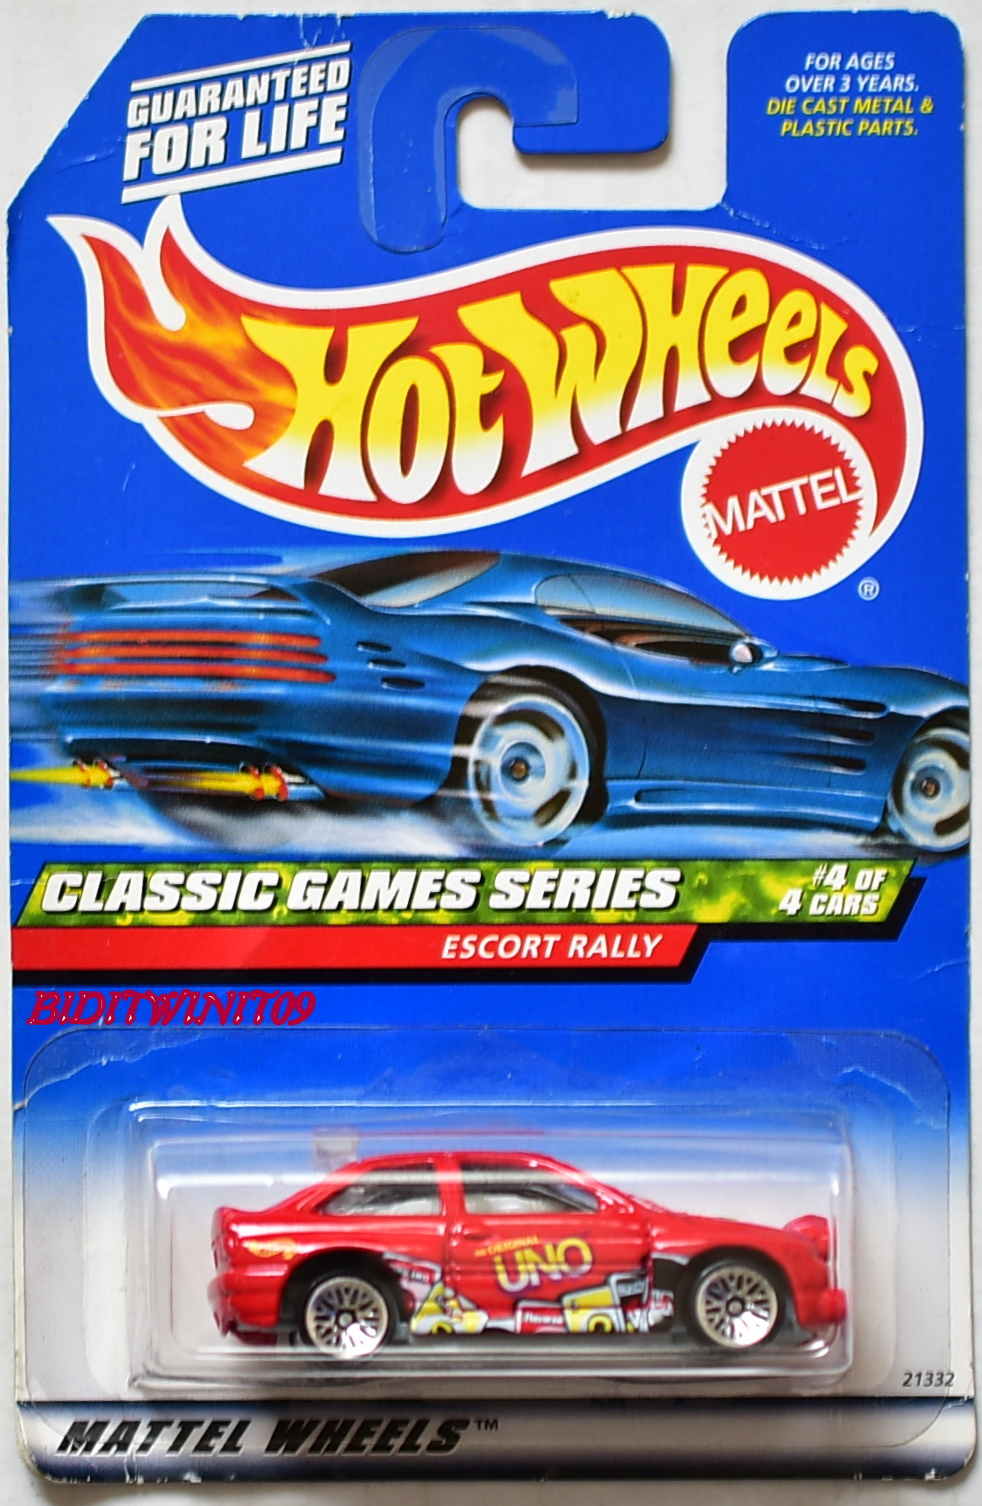 HOT WHEELS CLASSIC GAMES SERIES ESCORT RALLY #4/4 RED